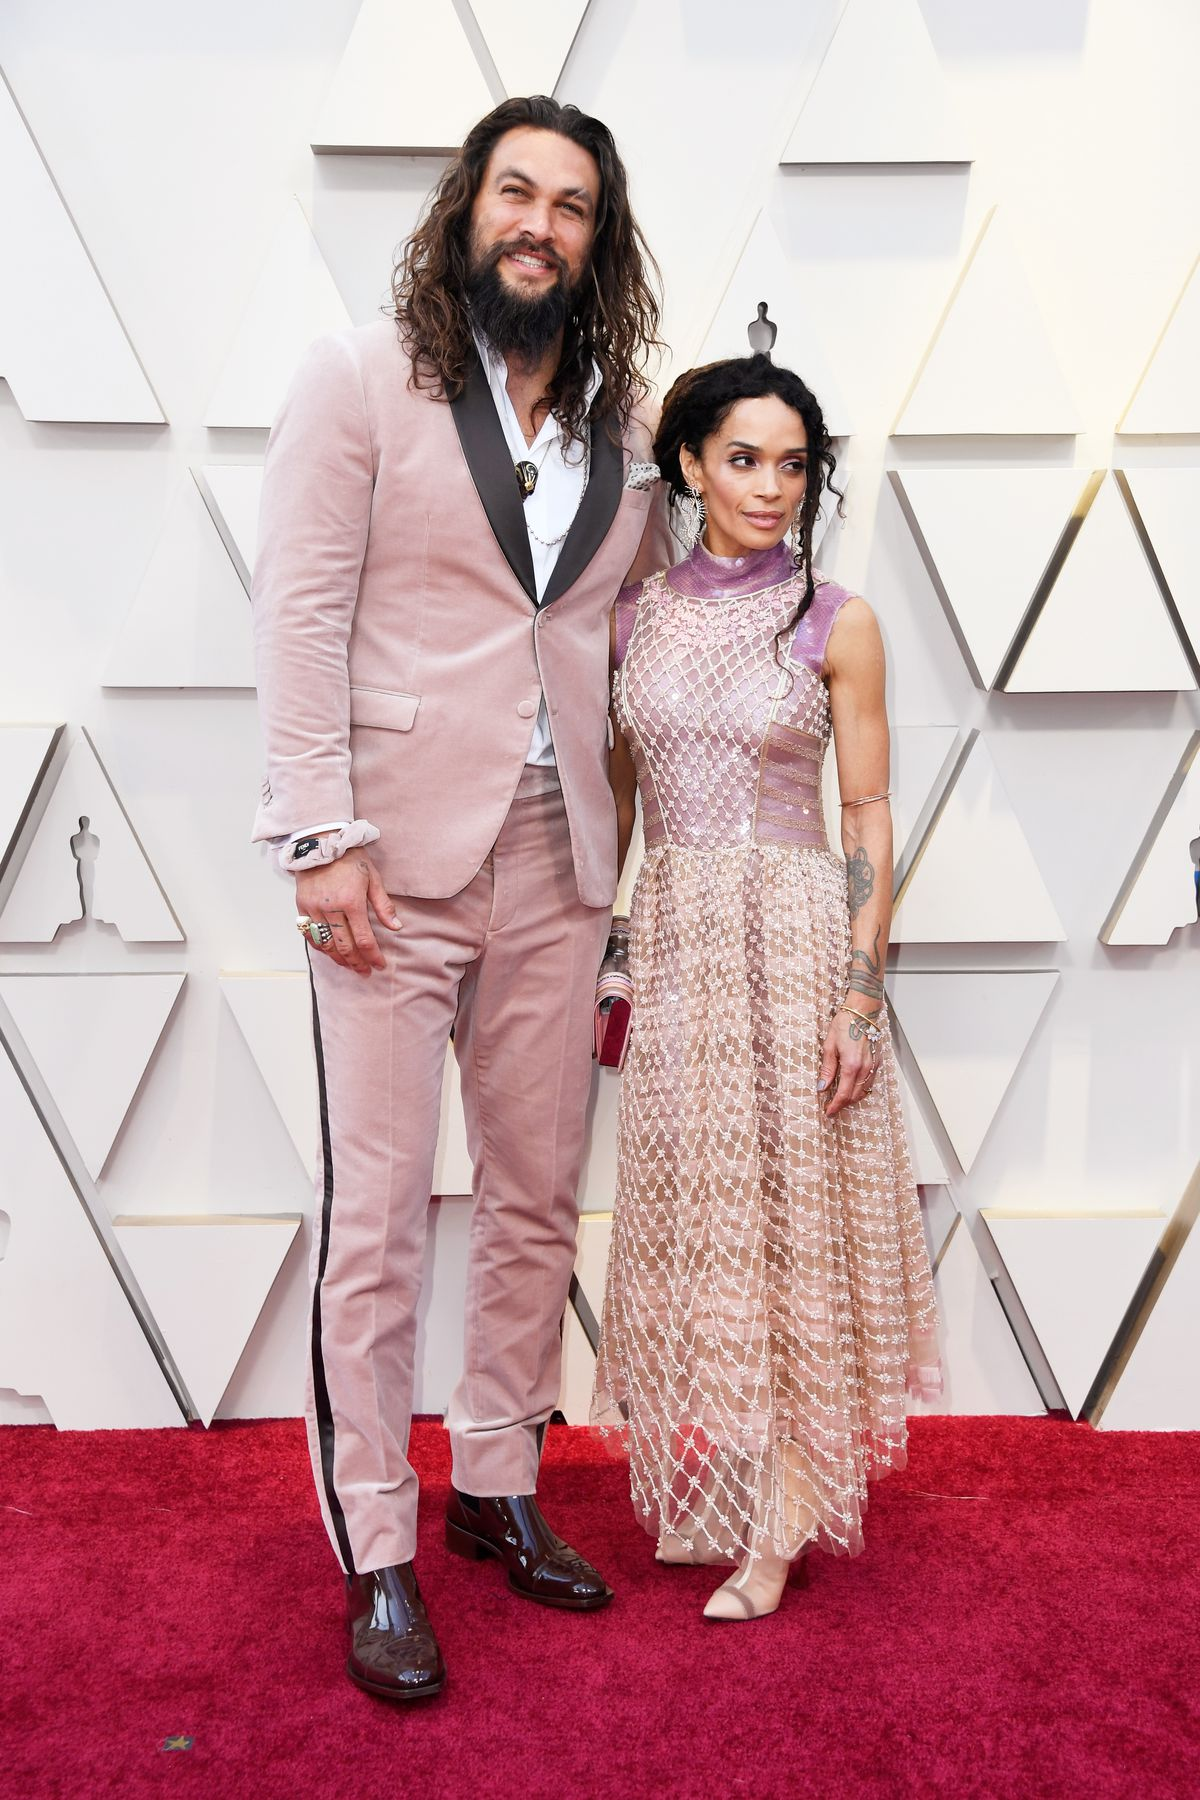 Oscars 2019: best-dressed celebrity fashion on the red